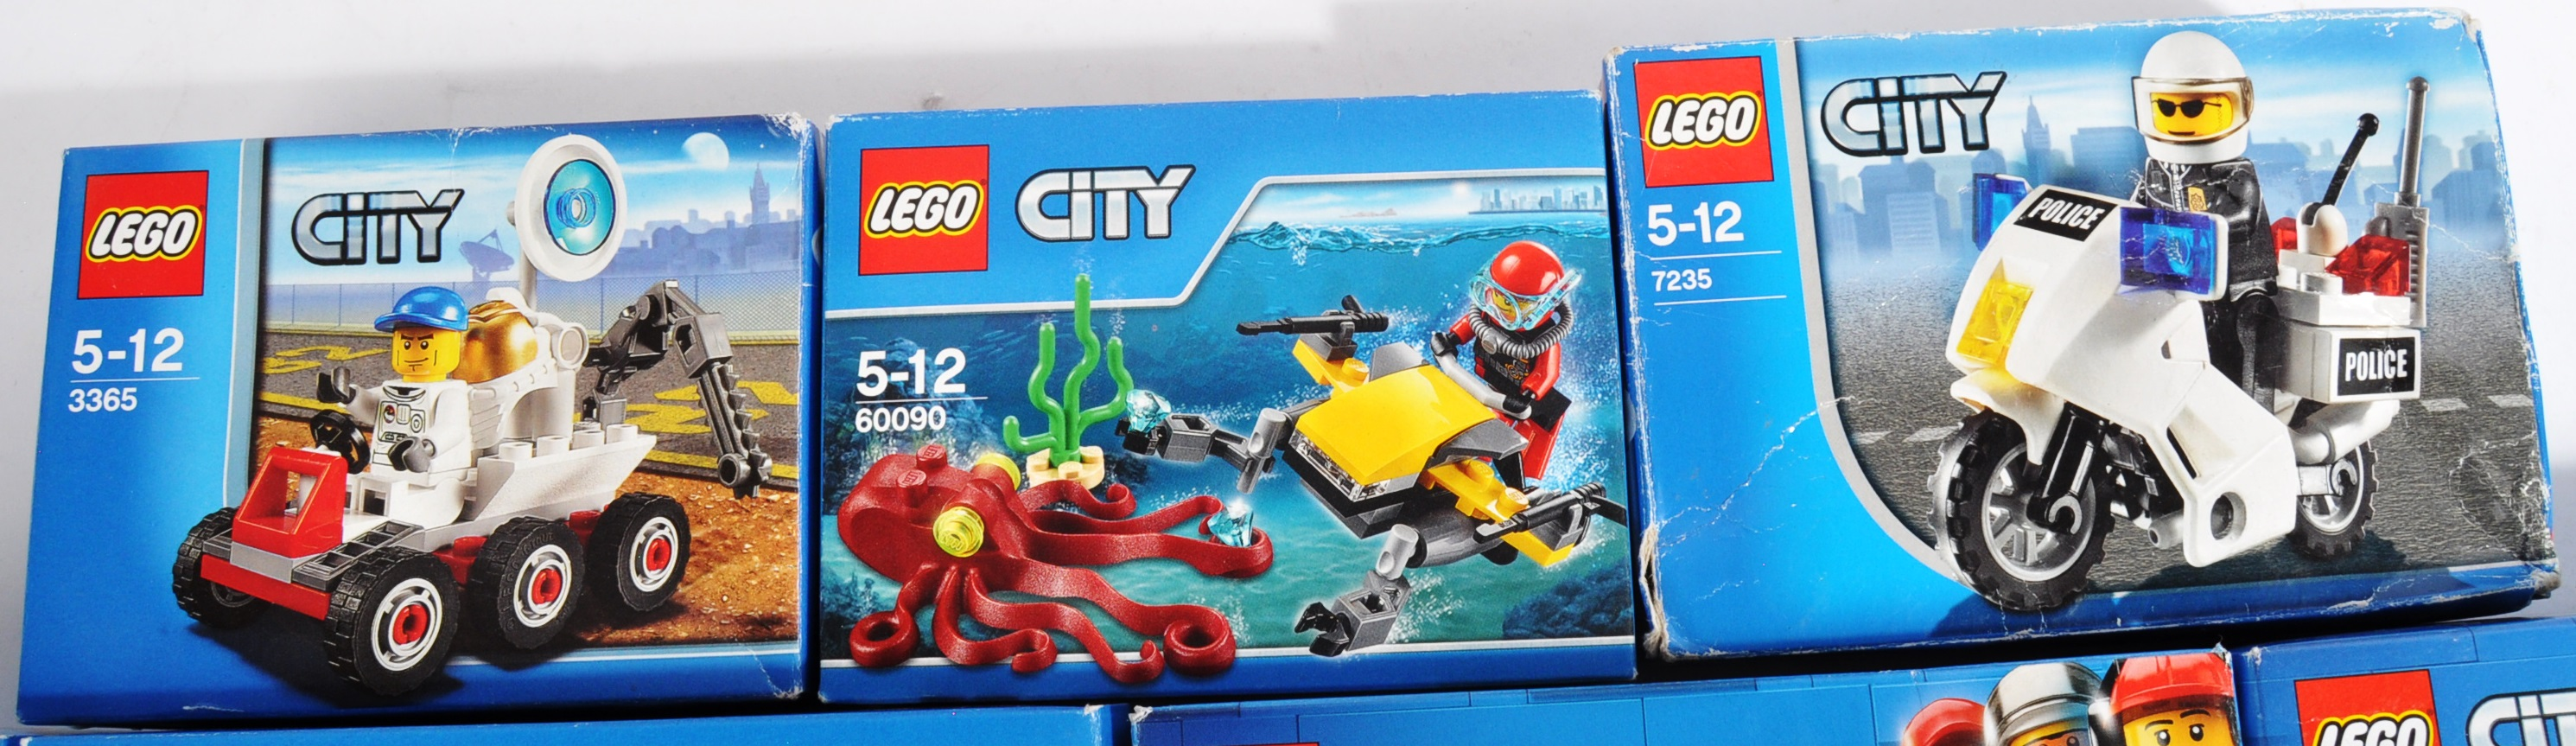 LEGO SETS - LEGO CITY - A COLLECTION OF X10 LEGO CITY SETS - Image 2 of 4